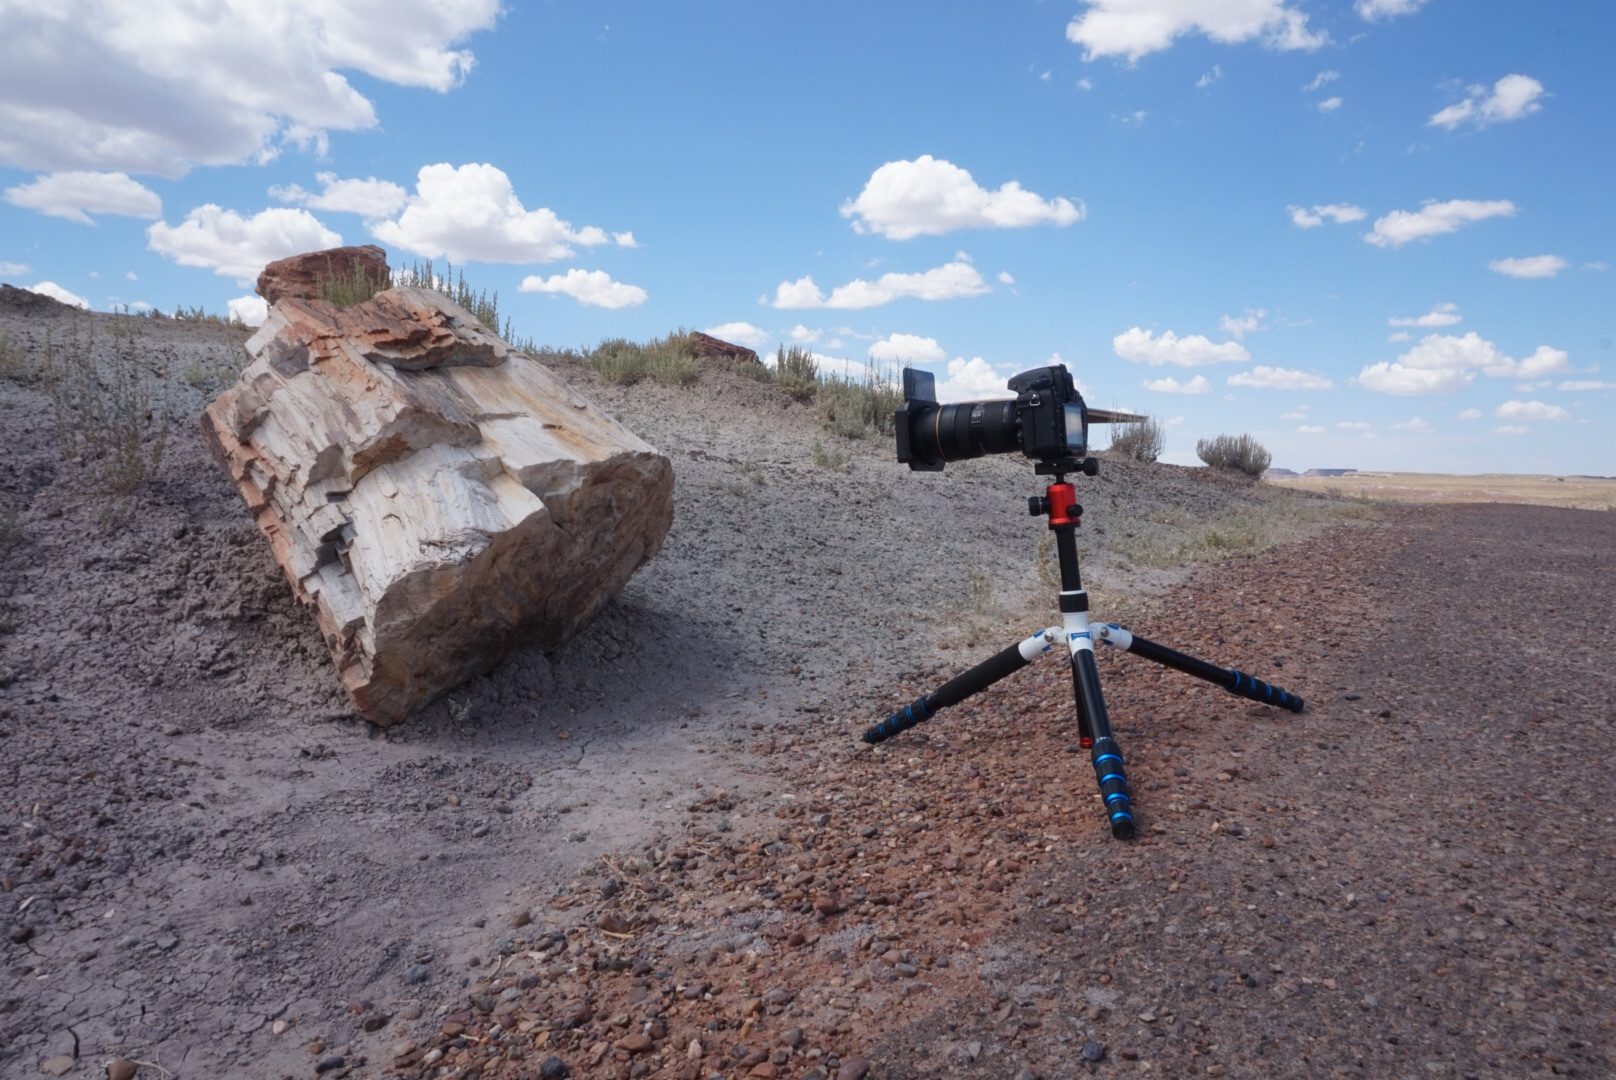 Taken at petrified forest with Sony A5000